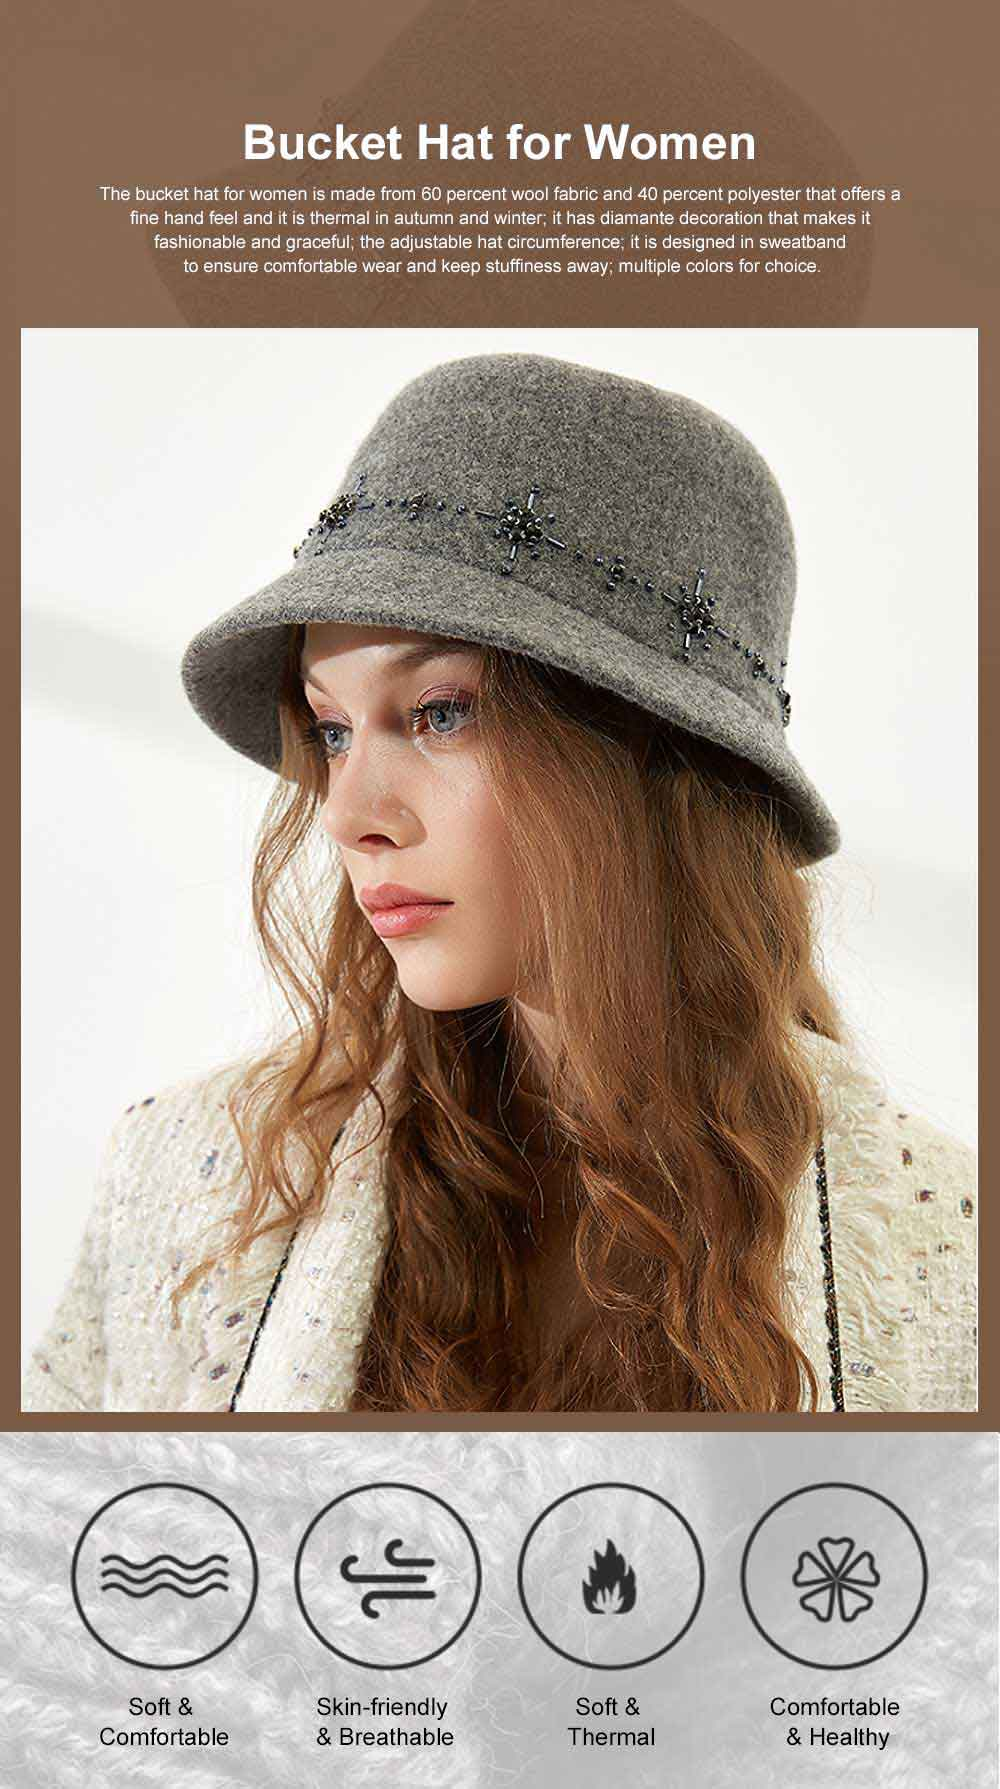 British Style Thermal Bucket Hat for Women Autumn Winter Wool-made Vintage Top Hat Round Top Revers Bowler Hat 0